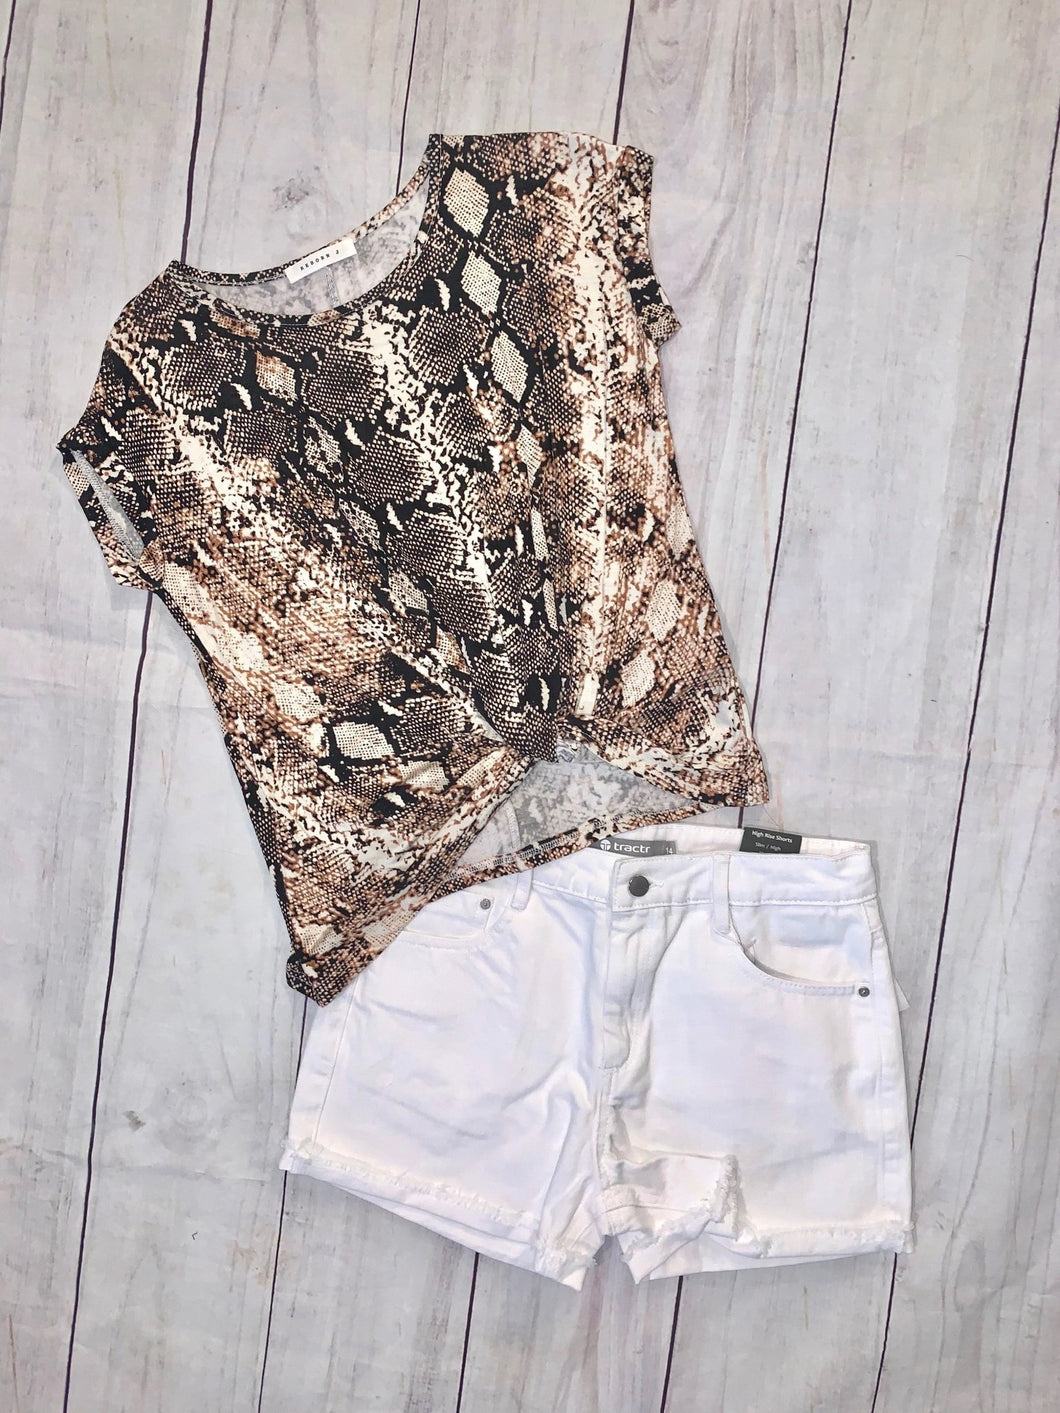 Snakeskin Top - jernijacks